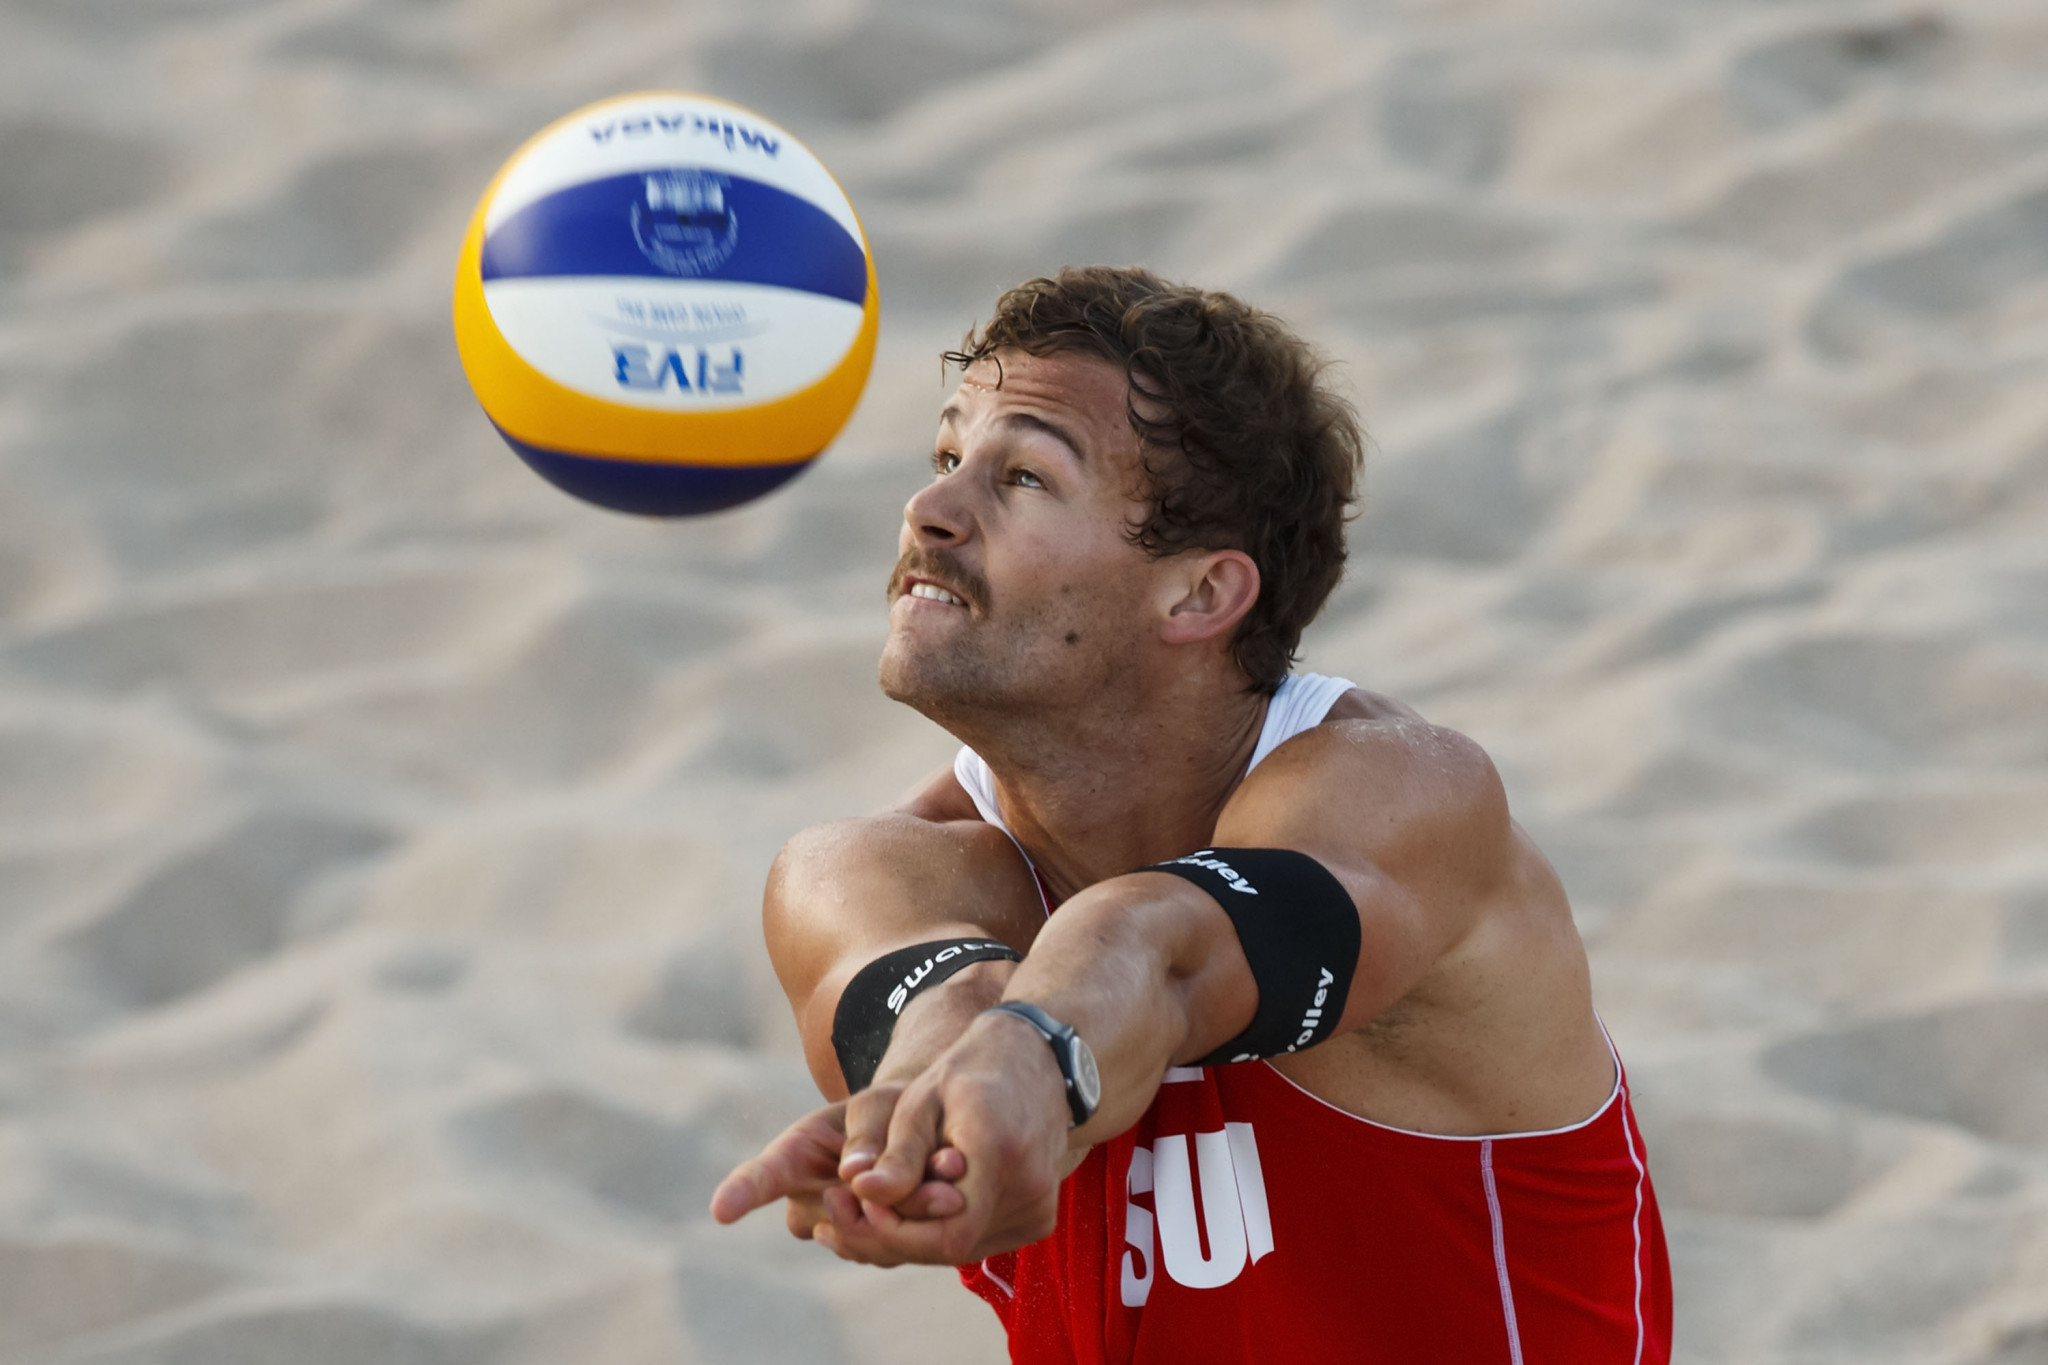 Italian pair spring surprise to qualify for Beach Volleyball World Tour main draw in Cancun